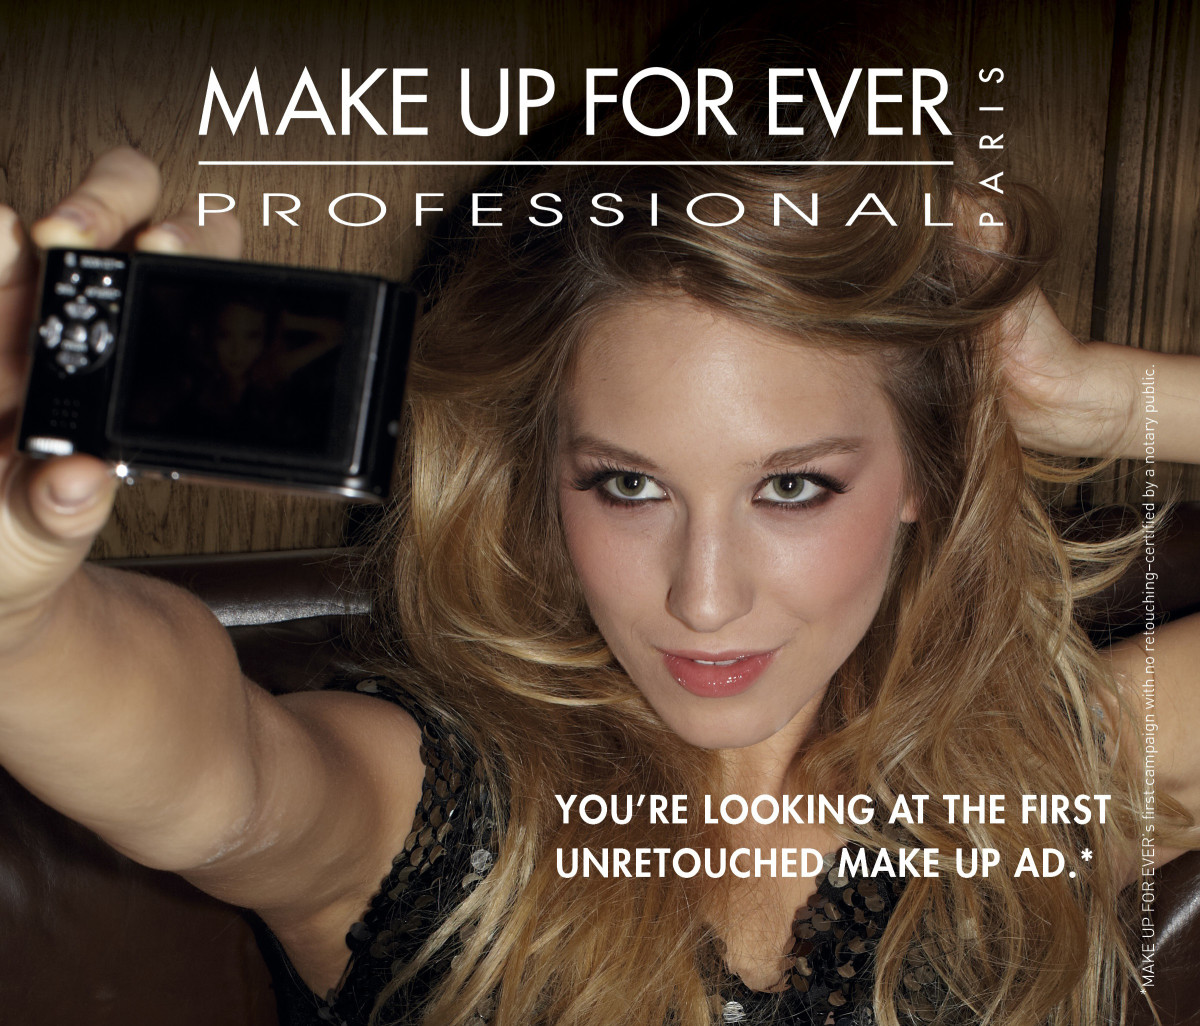 Make Up For Ever First Unretouched Ad